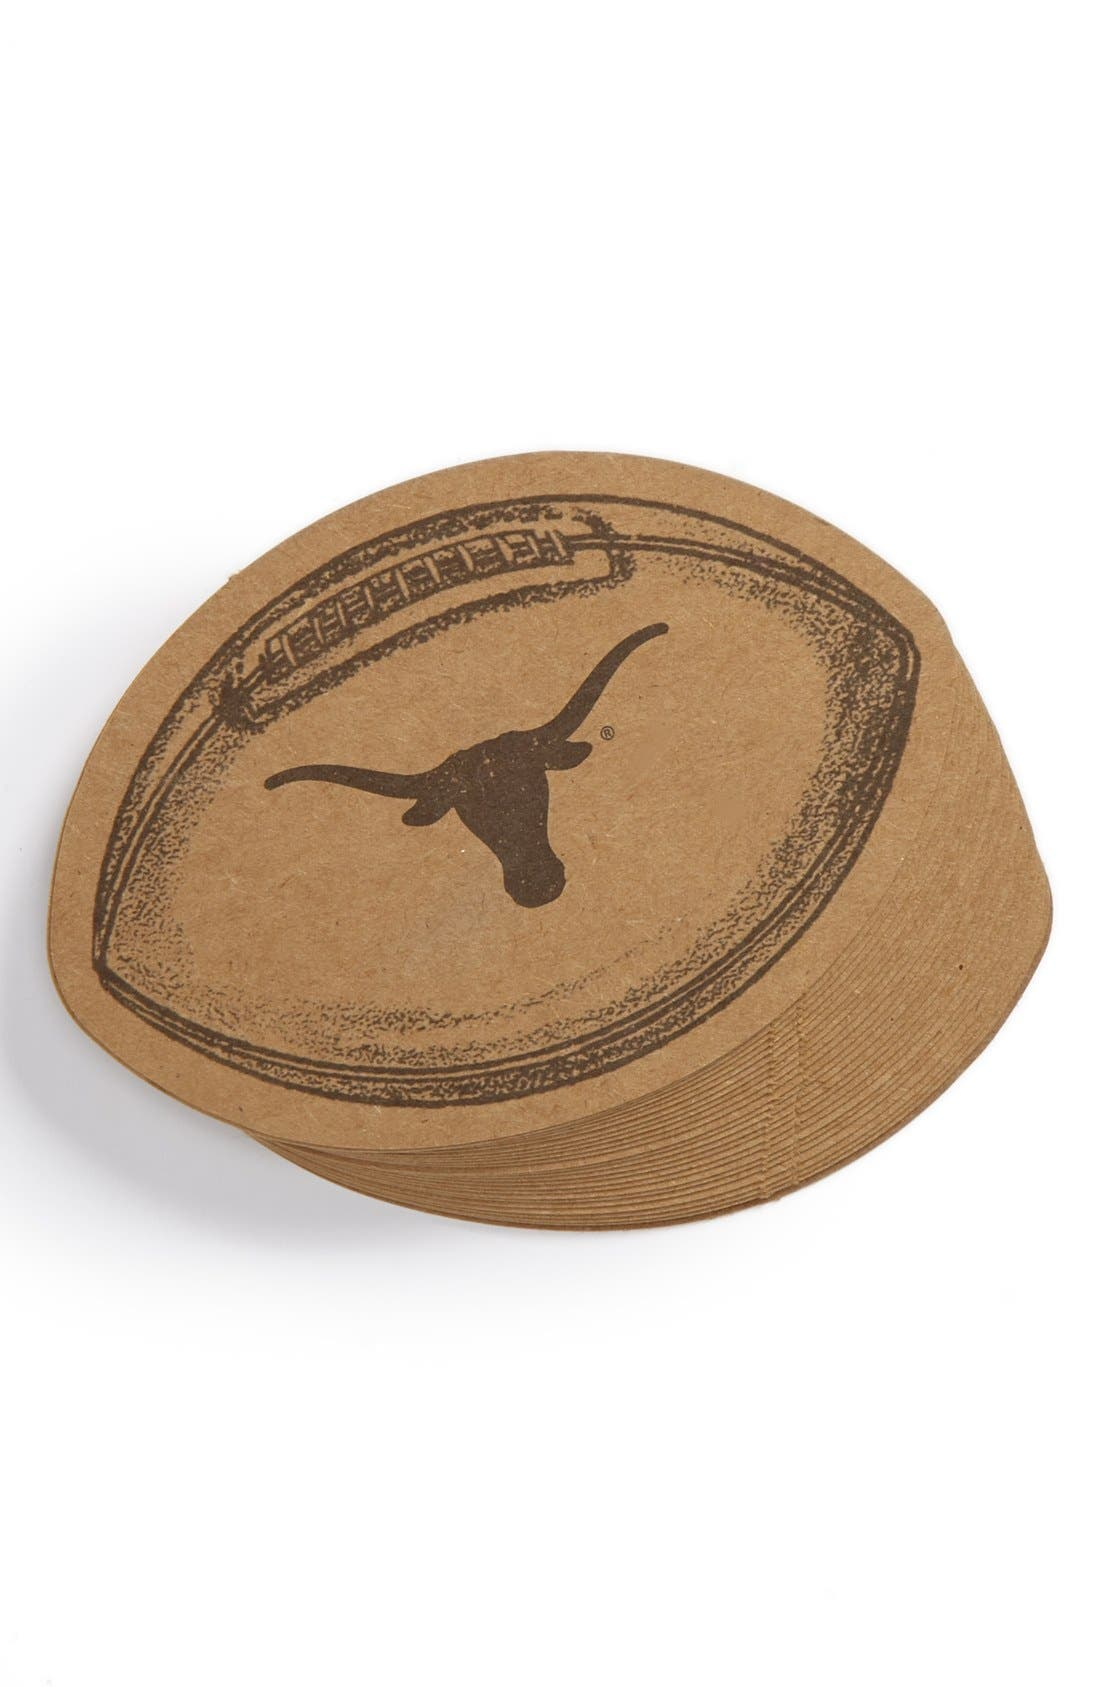 Main Image - Kitchen Papers by Cake 'Texas Longhorns' Coasters (Set of 25)